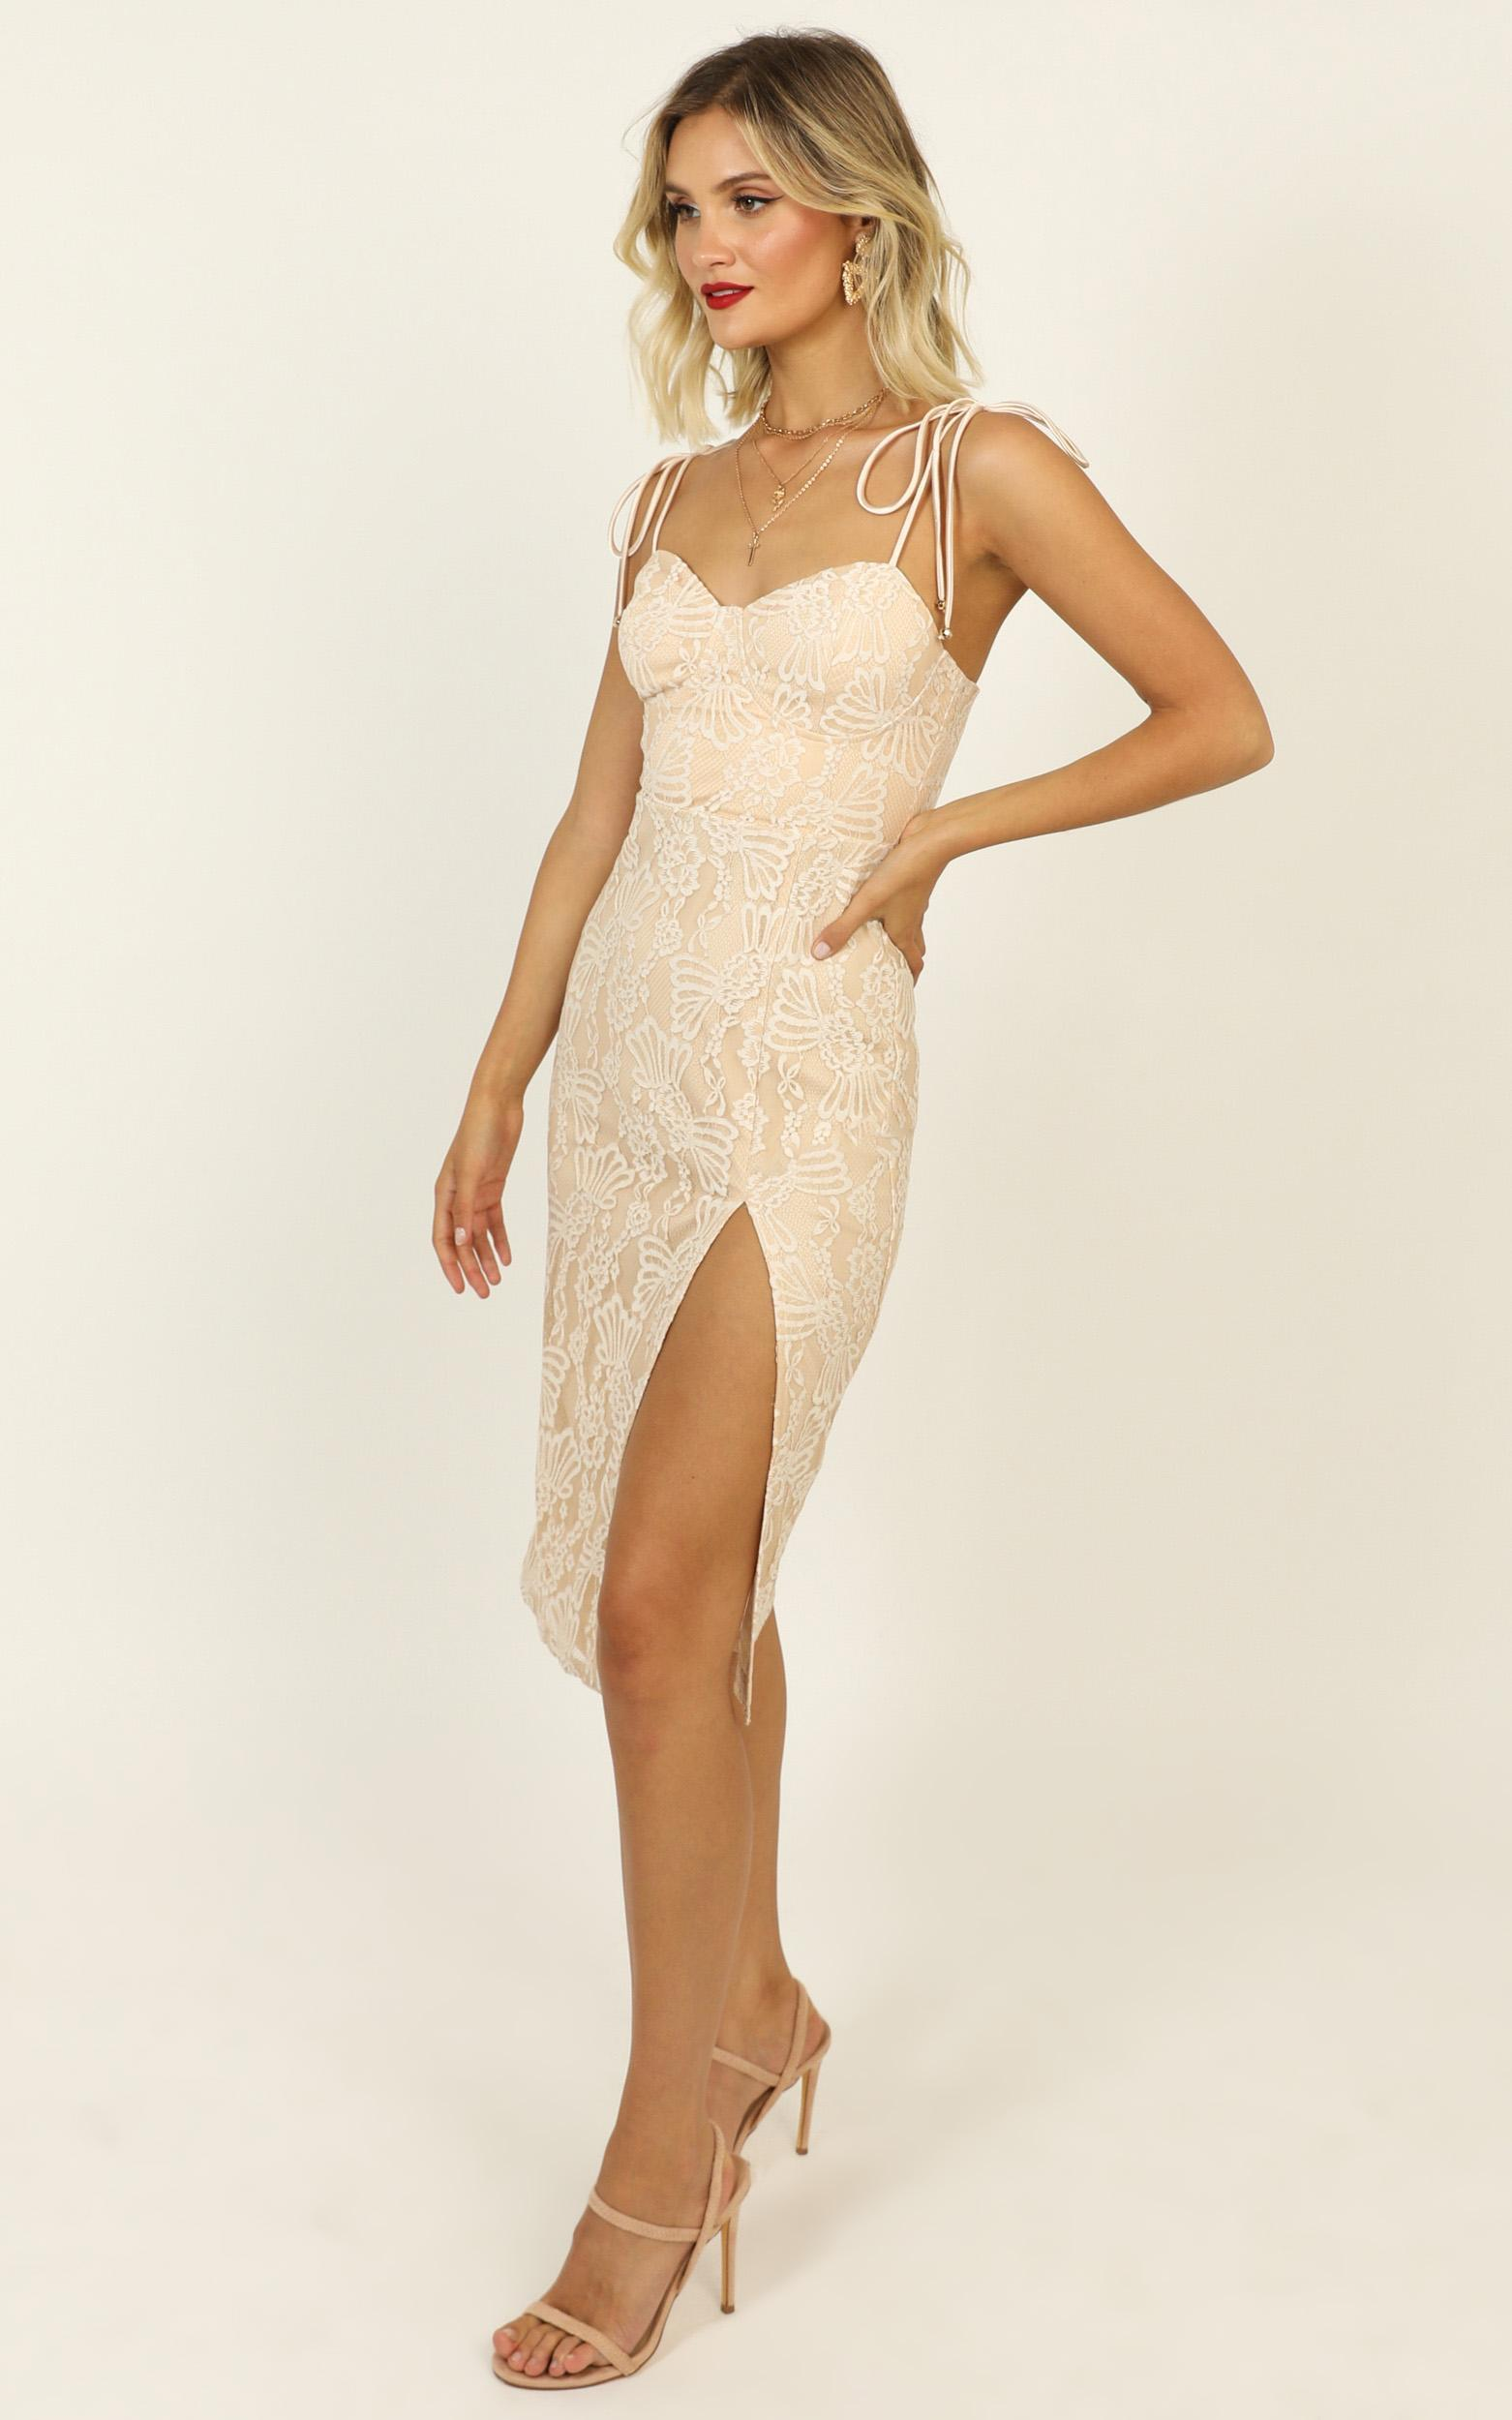 Youve Got The Power Dress in nude lace - 20 (XXXXL), Beige, hi-res image number null